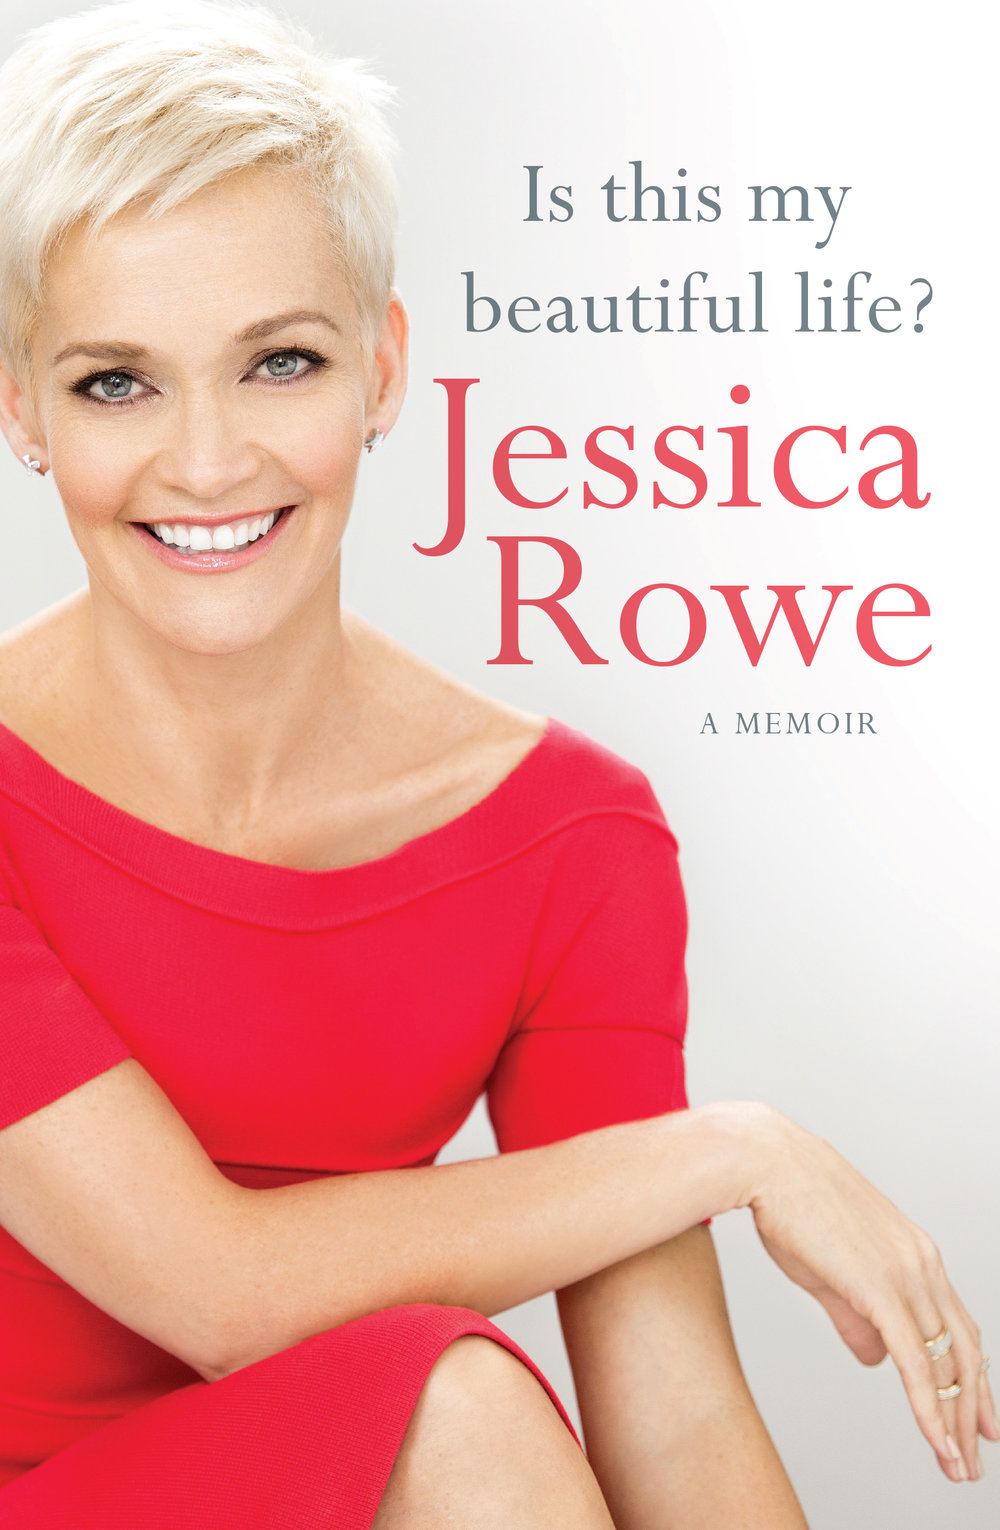 Is This My Beautiful Life? - 2015, ALLEN & UNWINThe deeply honest, funny, gut-wrenching and touching memoir from journalist, celebrity, wife, mother, television presenter and author, Jessica Rowe.